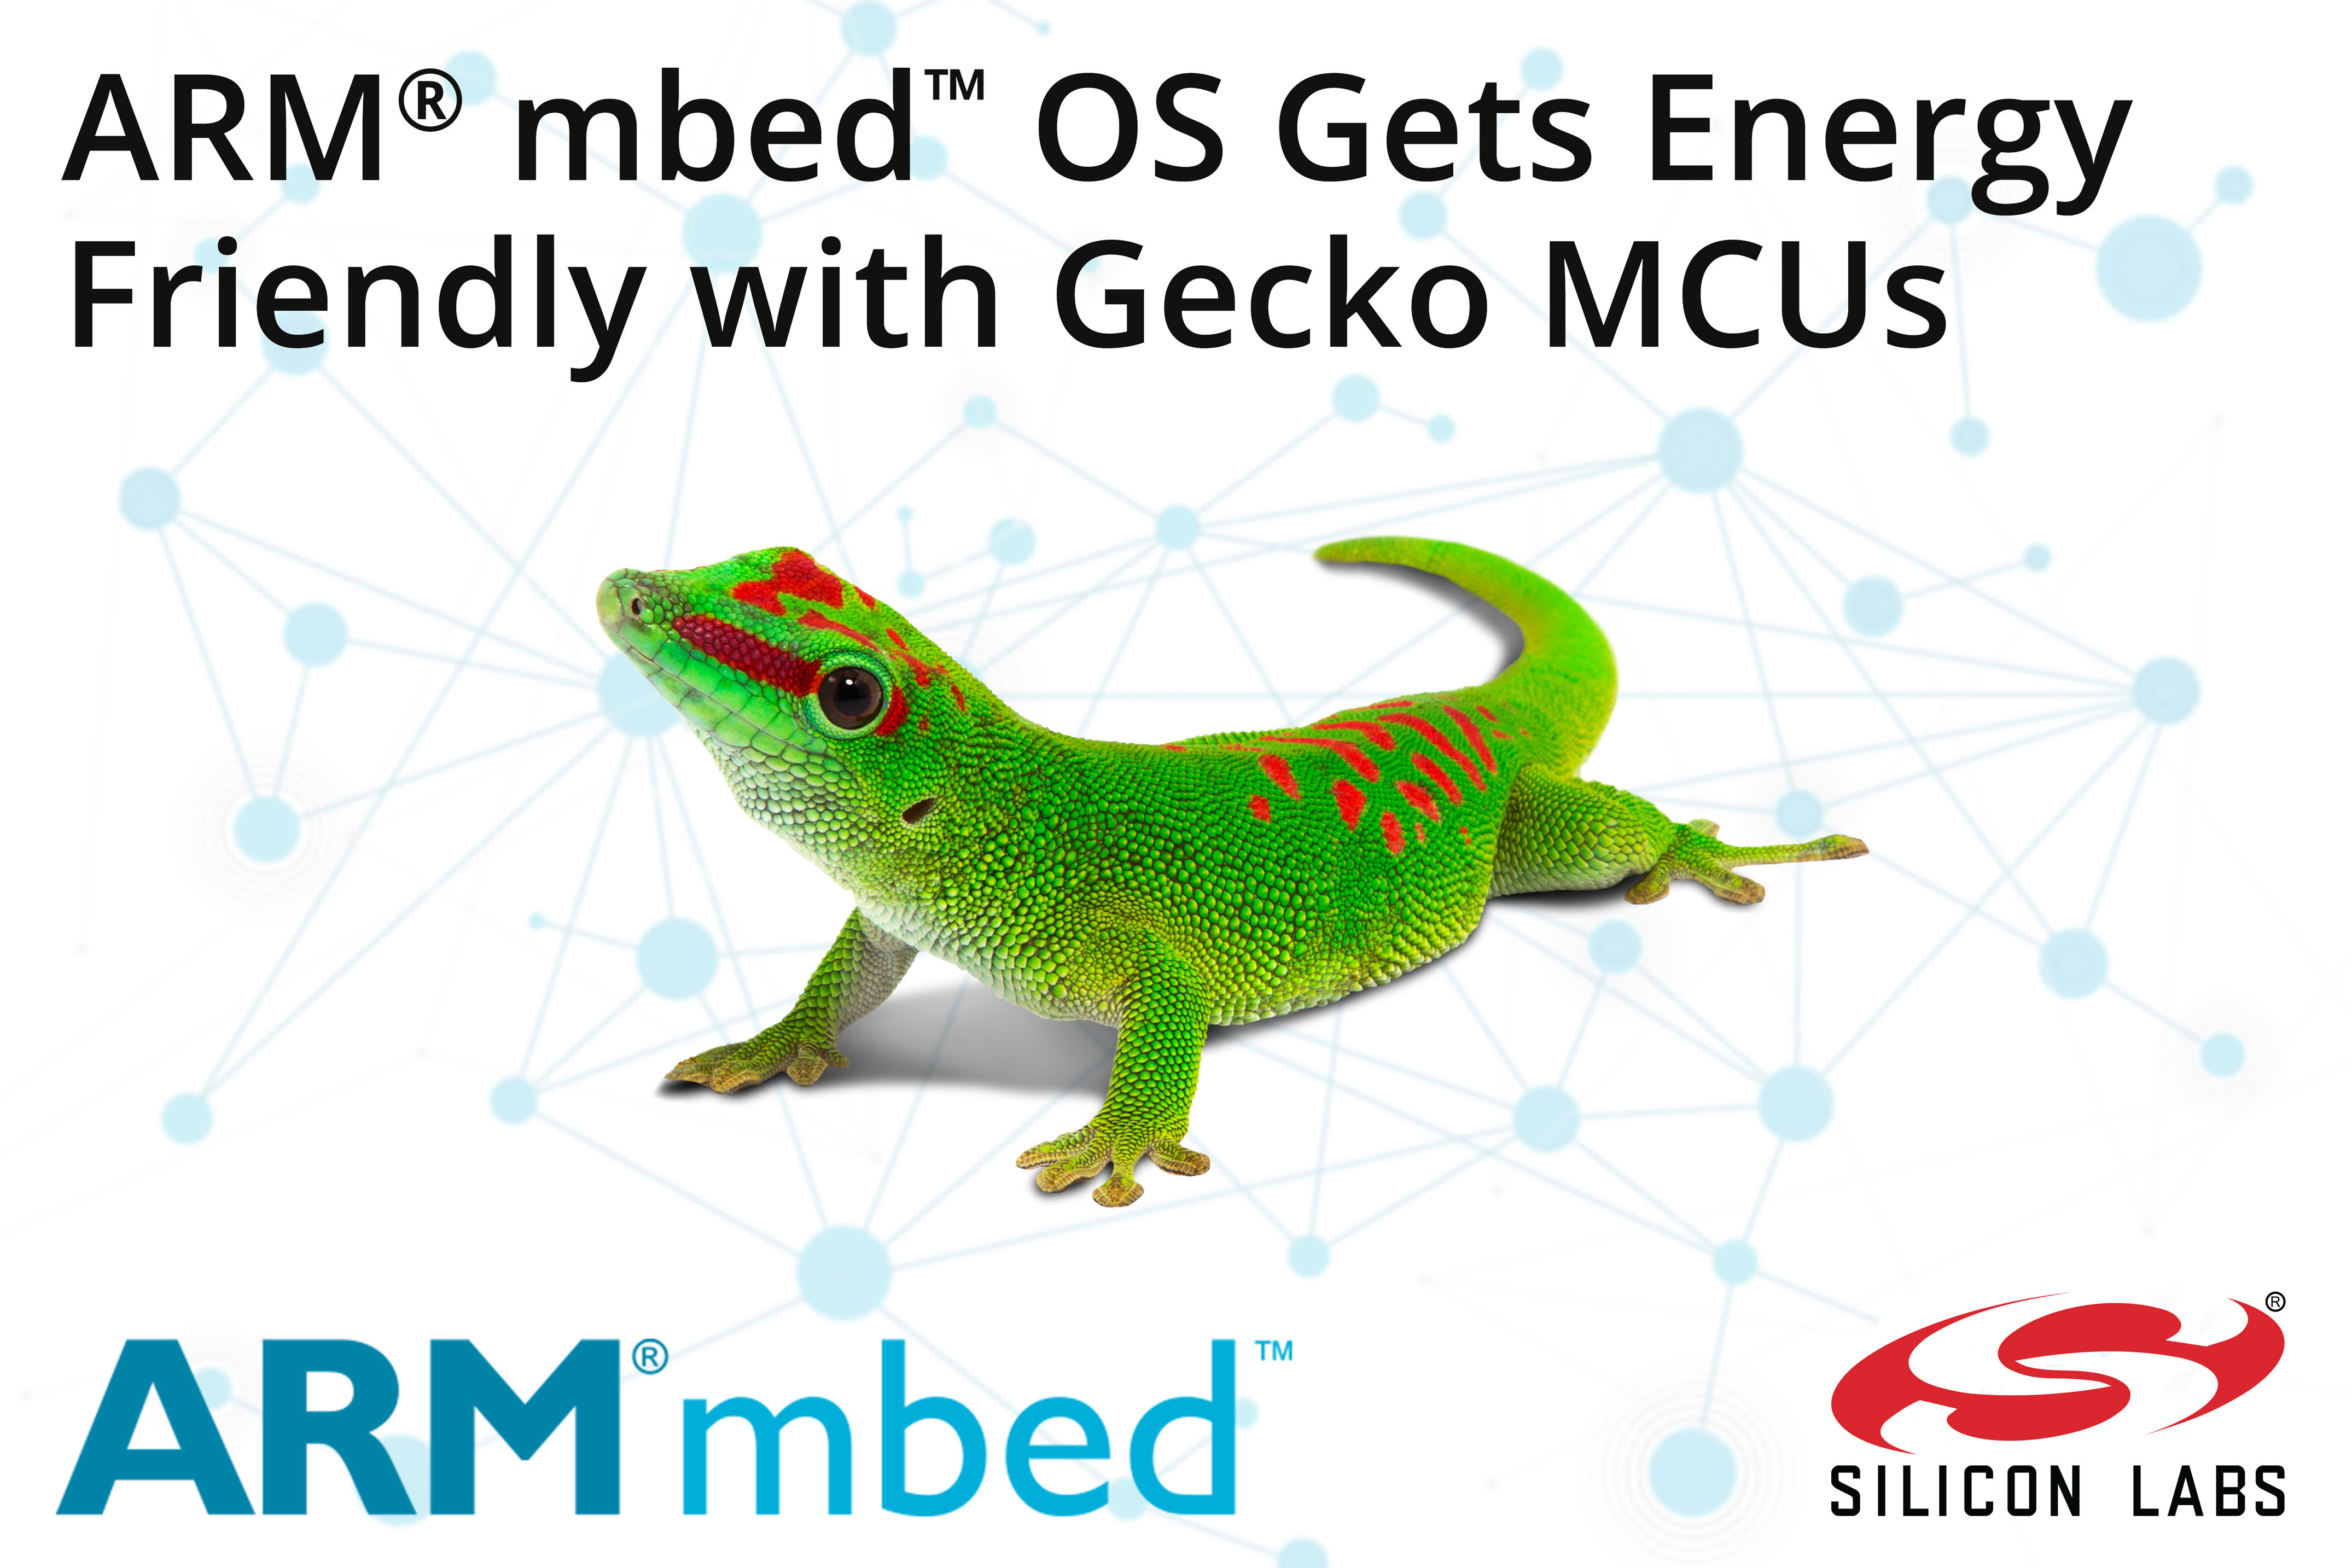 ARM mbed OS Gets Energy Friendly with Gecko Technology from